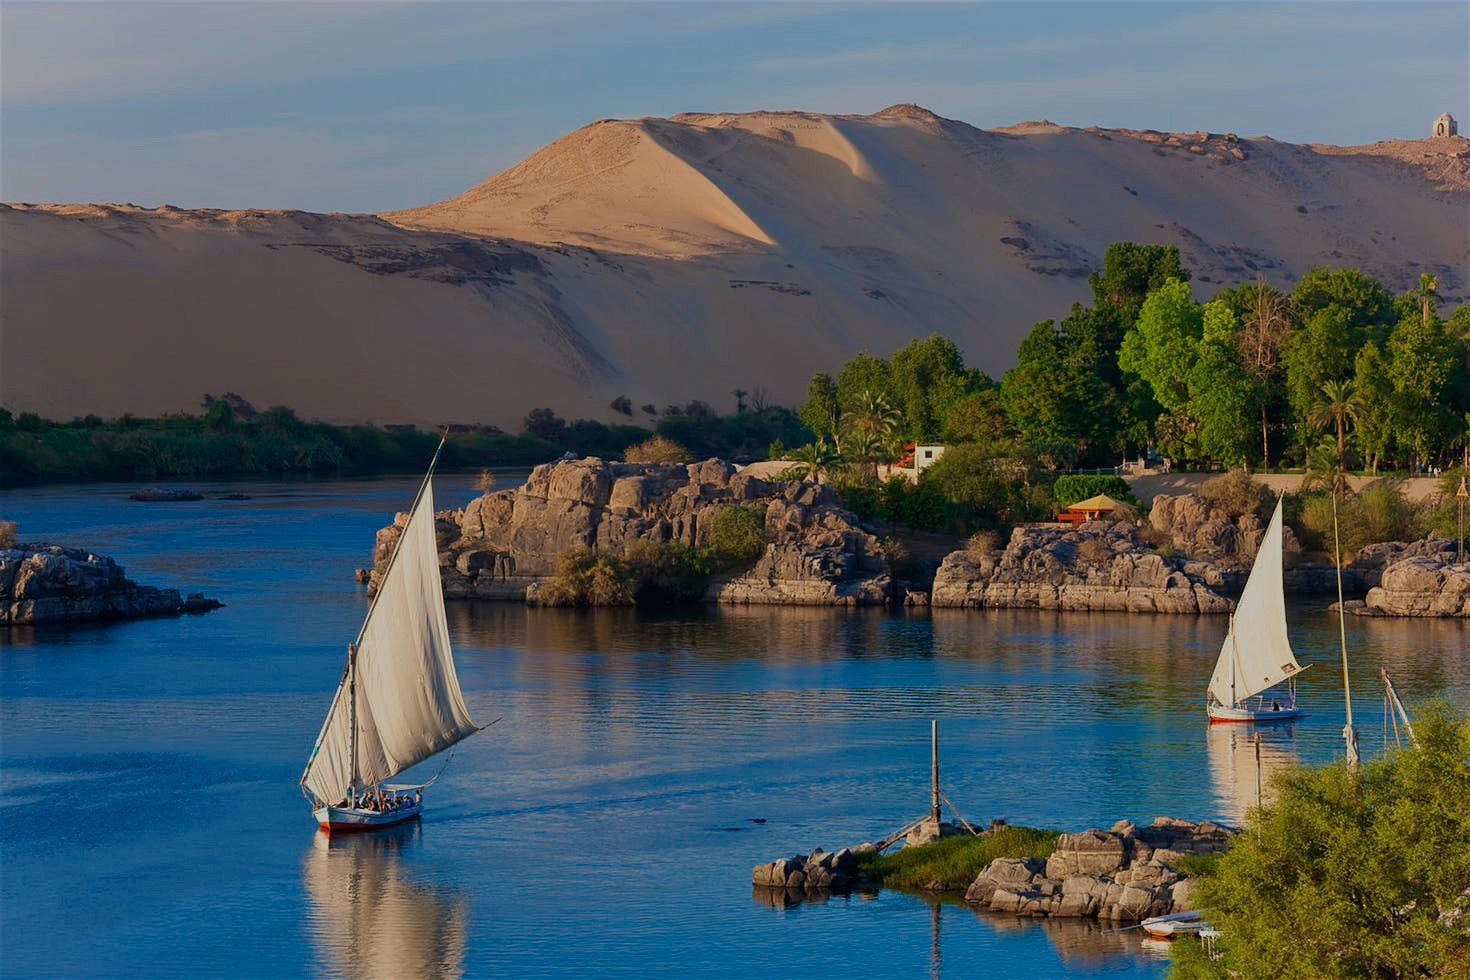 Private SailBoat from Aswan to Botanic Gardens